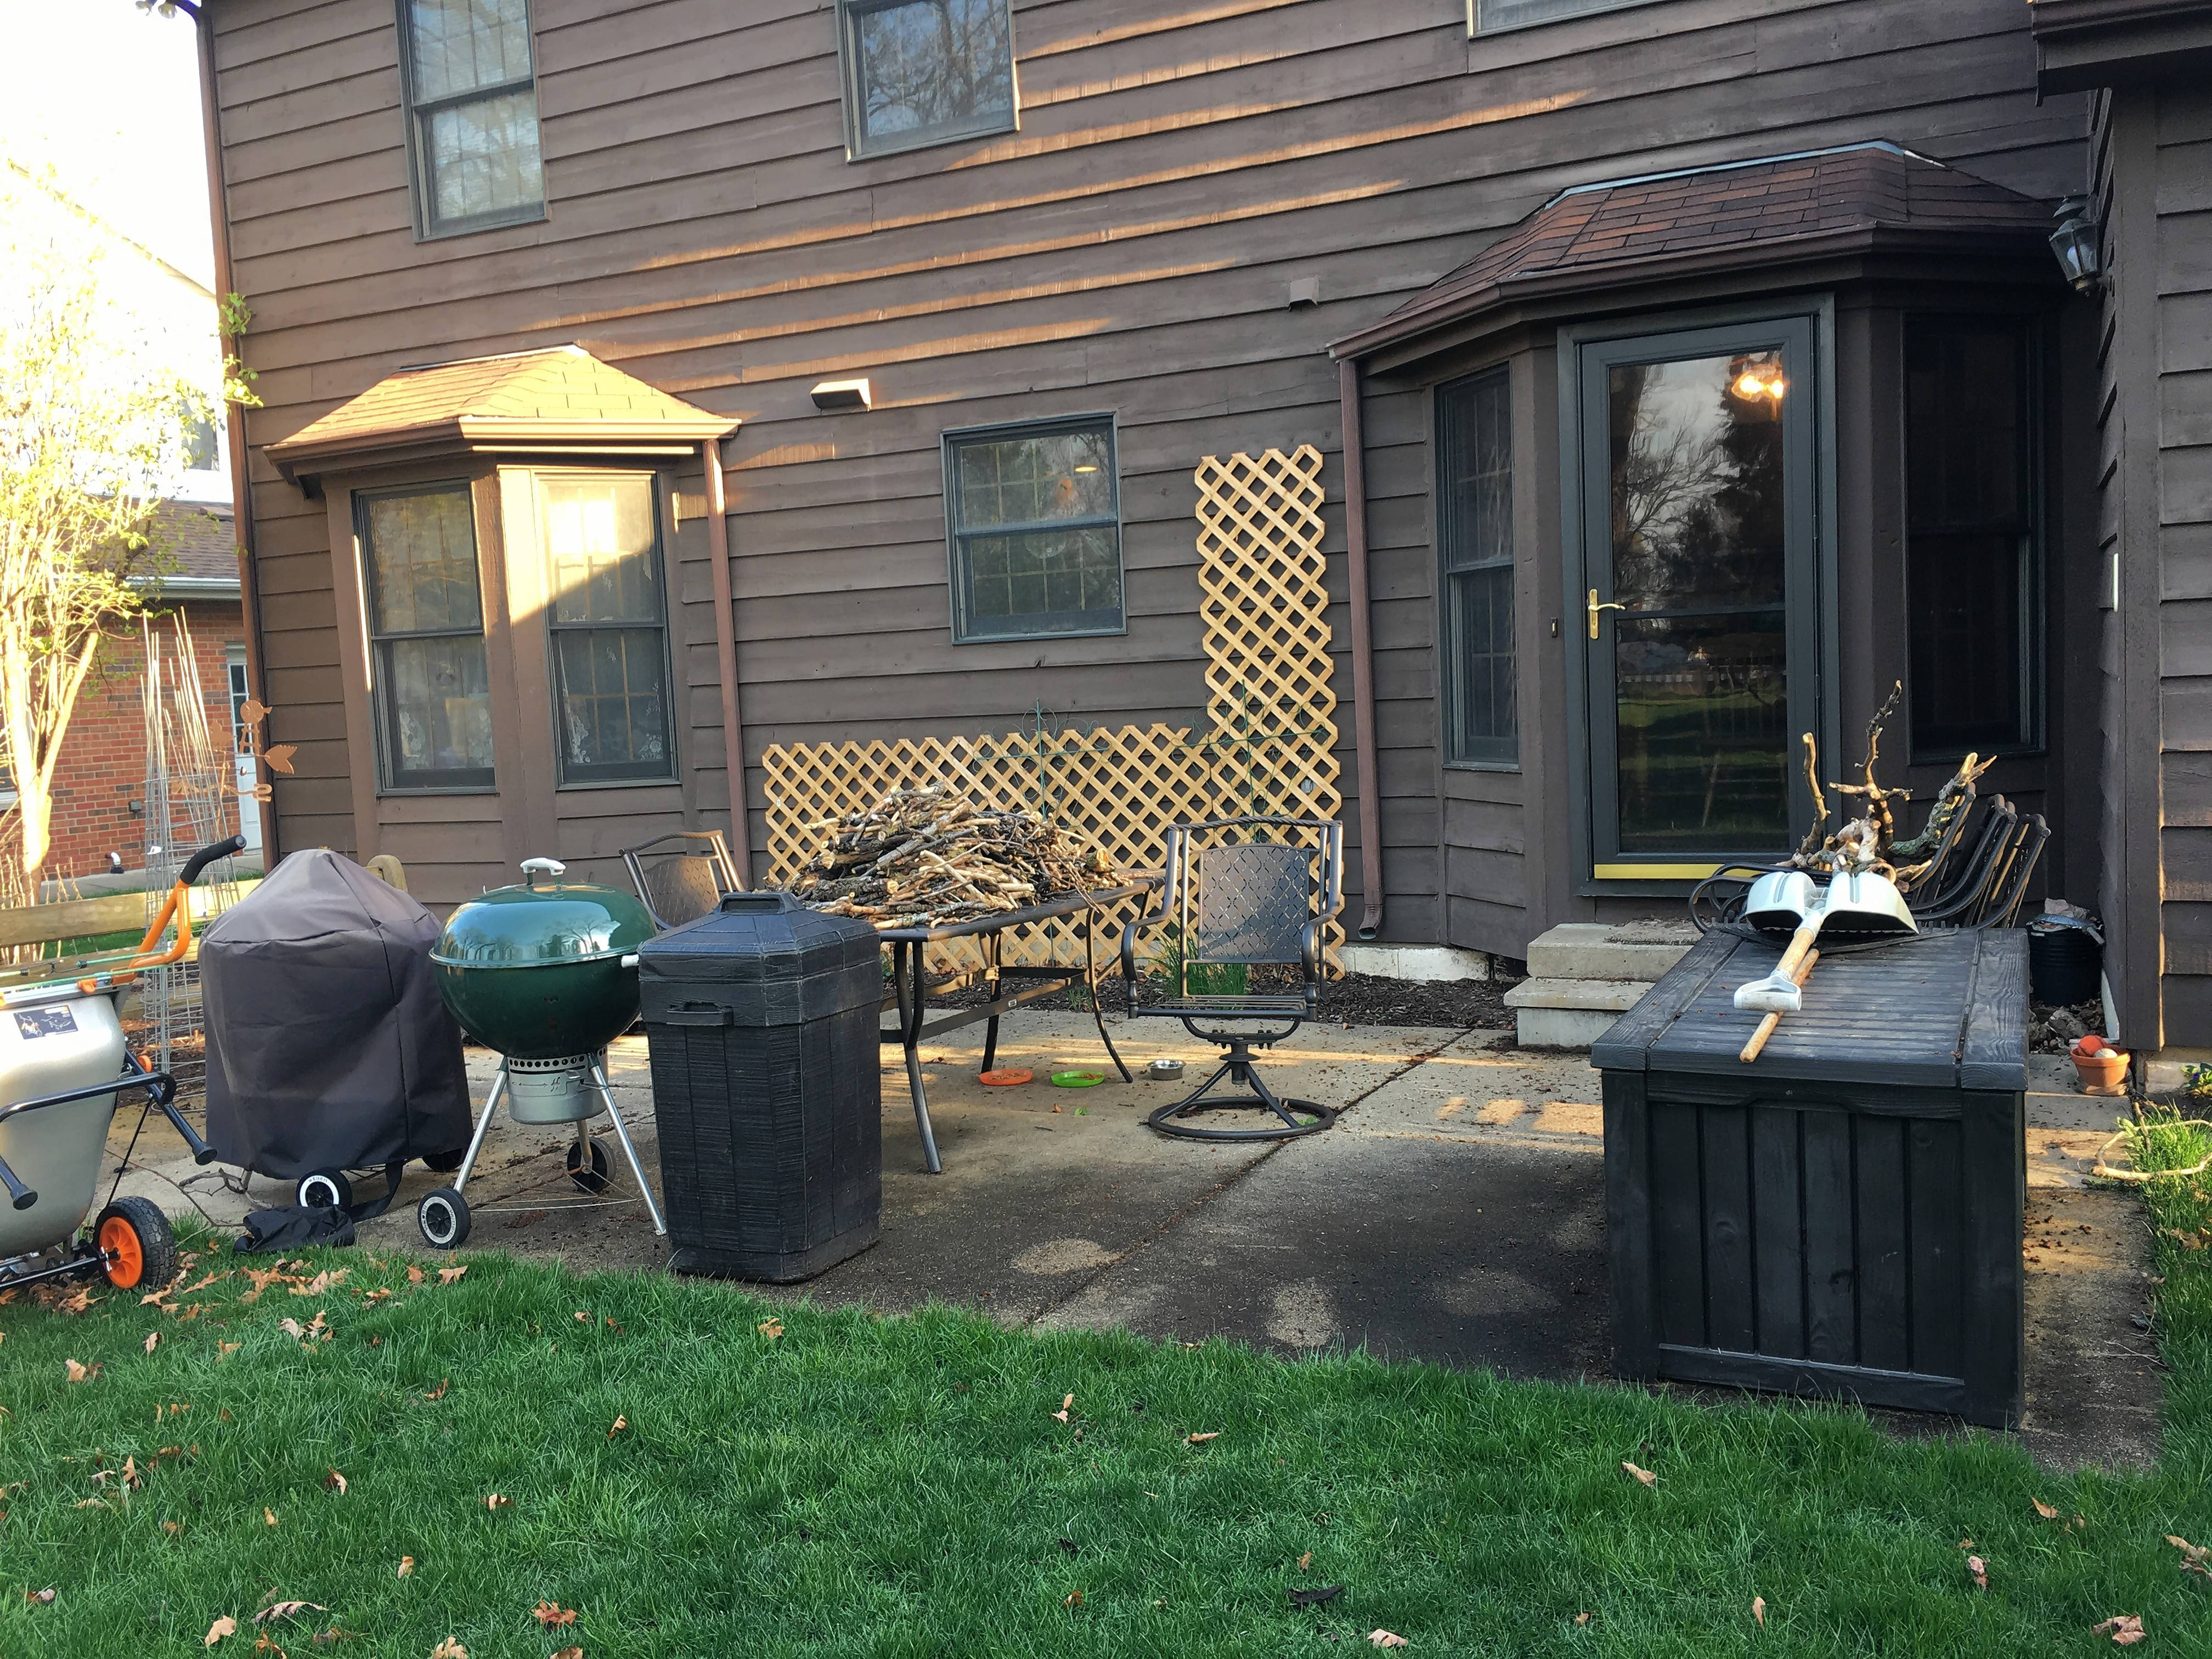 Merveilleux Shirley Allison Of Des Plaines Says Her Patio Has Pretty Much Become A Work  Area That